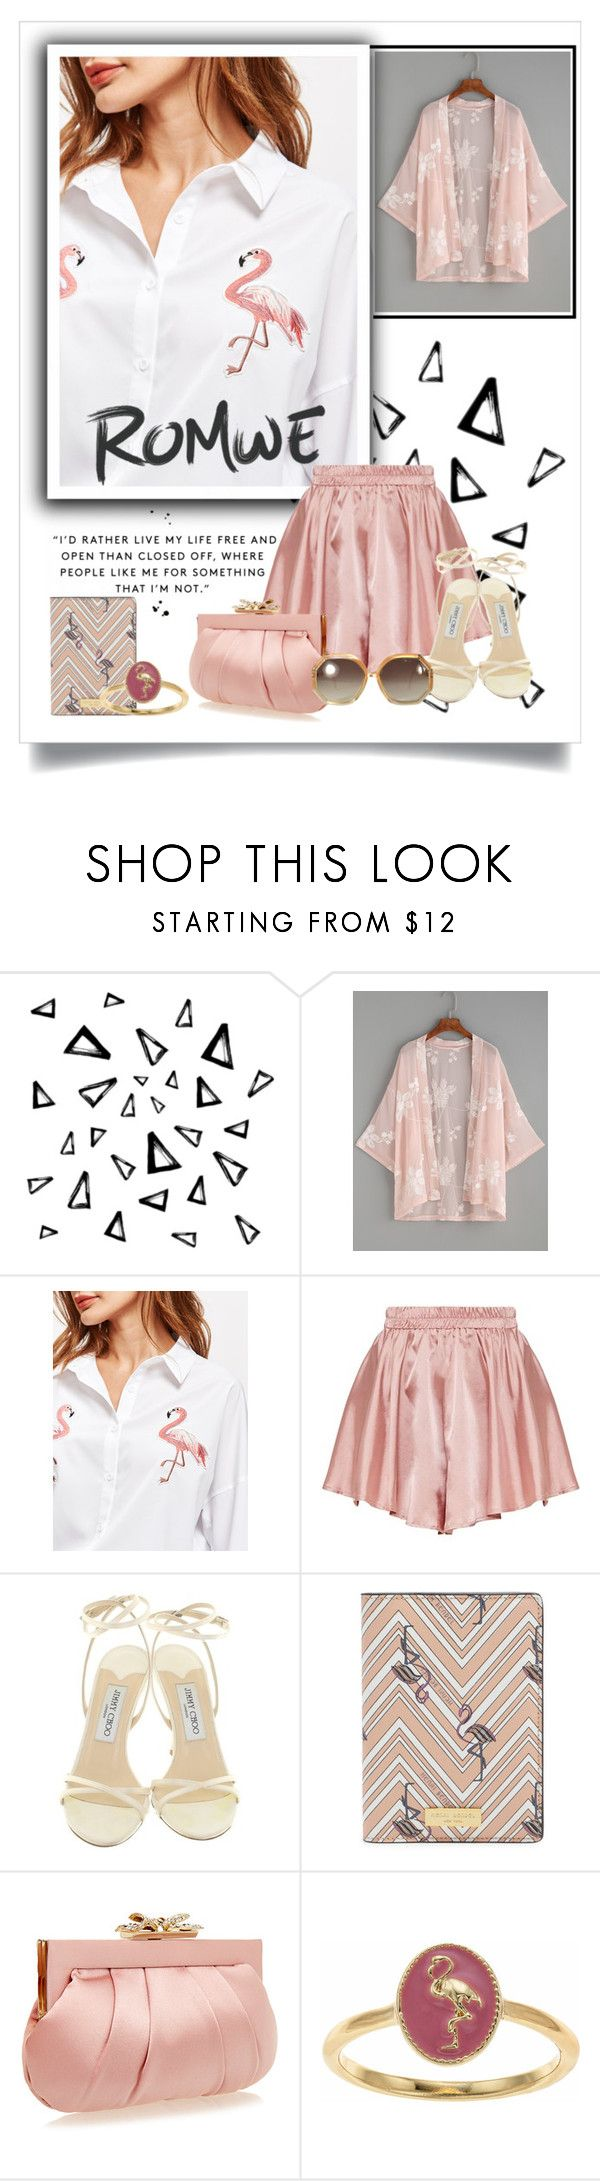 """RW458364"" by nixiey ❤ liked on Polyvore featuring Nika, Jimmy Choo, Henri Bendel, Wilbur & Gussie, LC Lauren Conrad and Ted Lapidus"